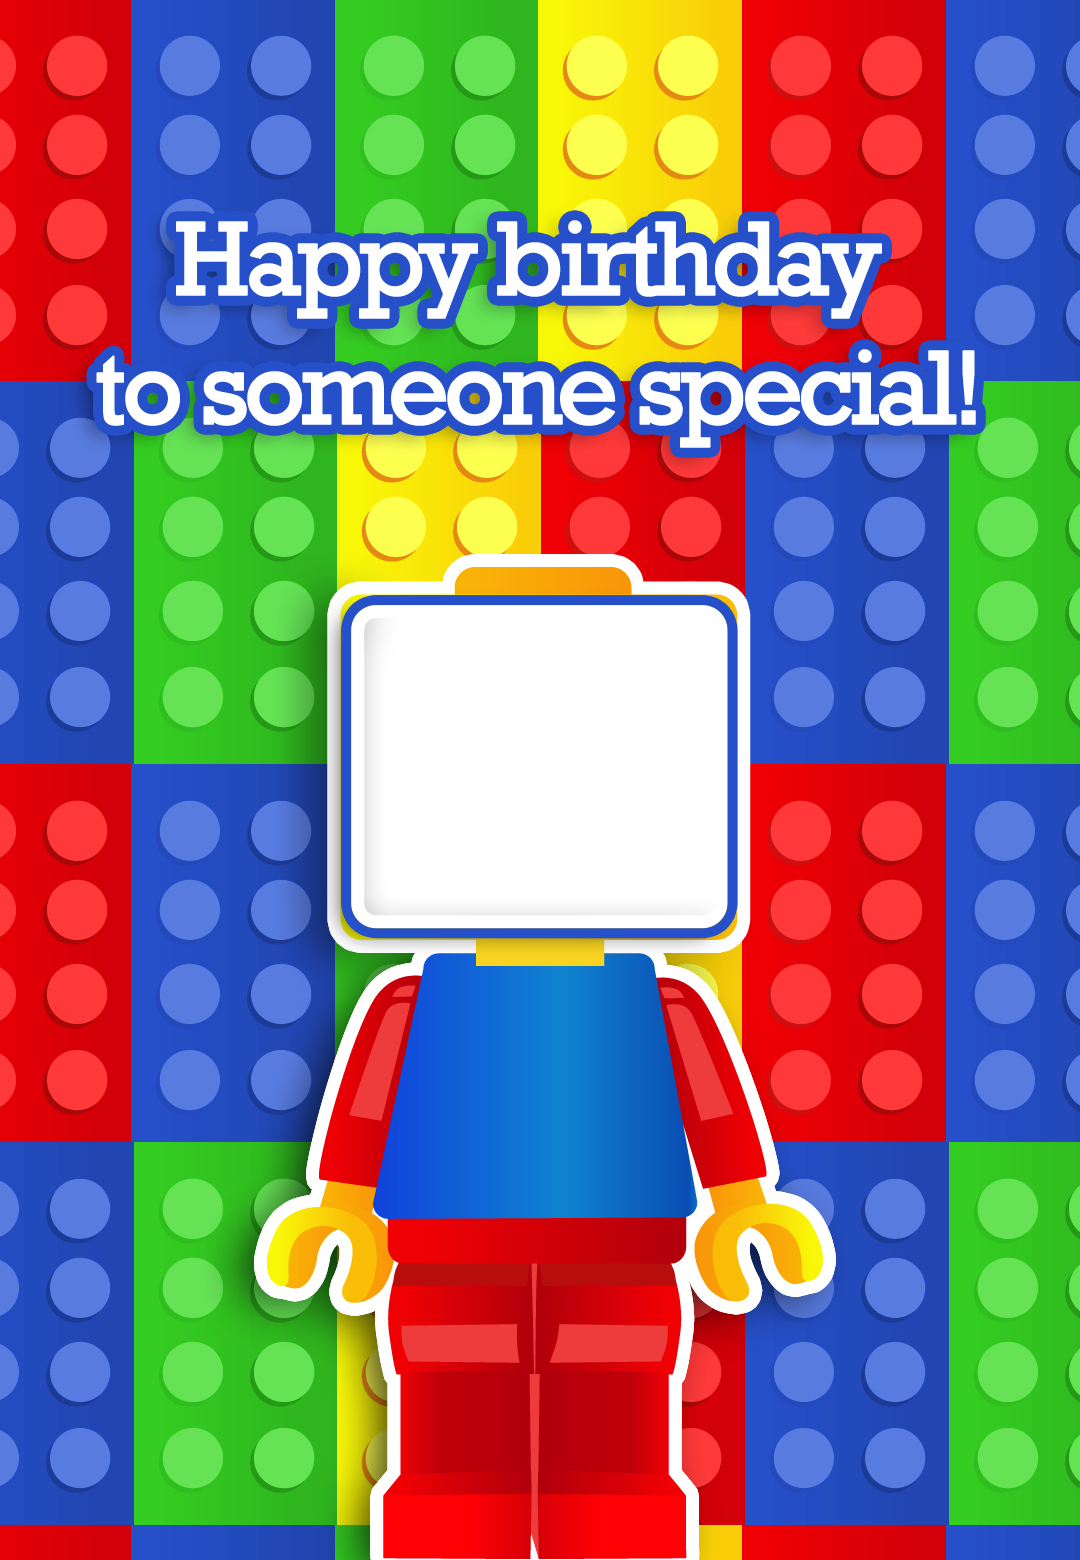 To Someone Special Free Printable Birthday Card Greetings Island